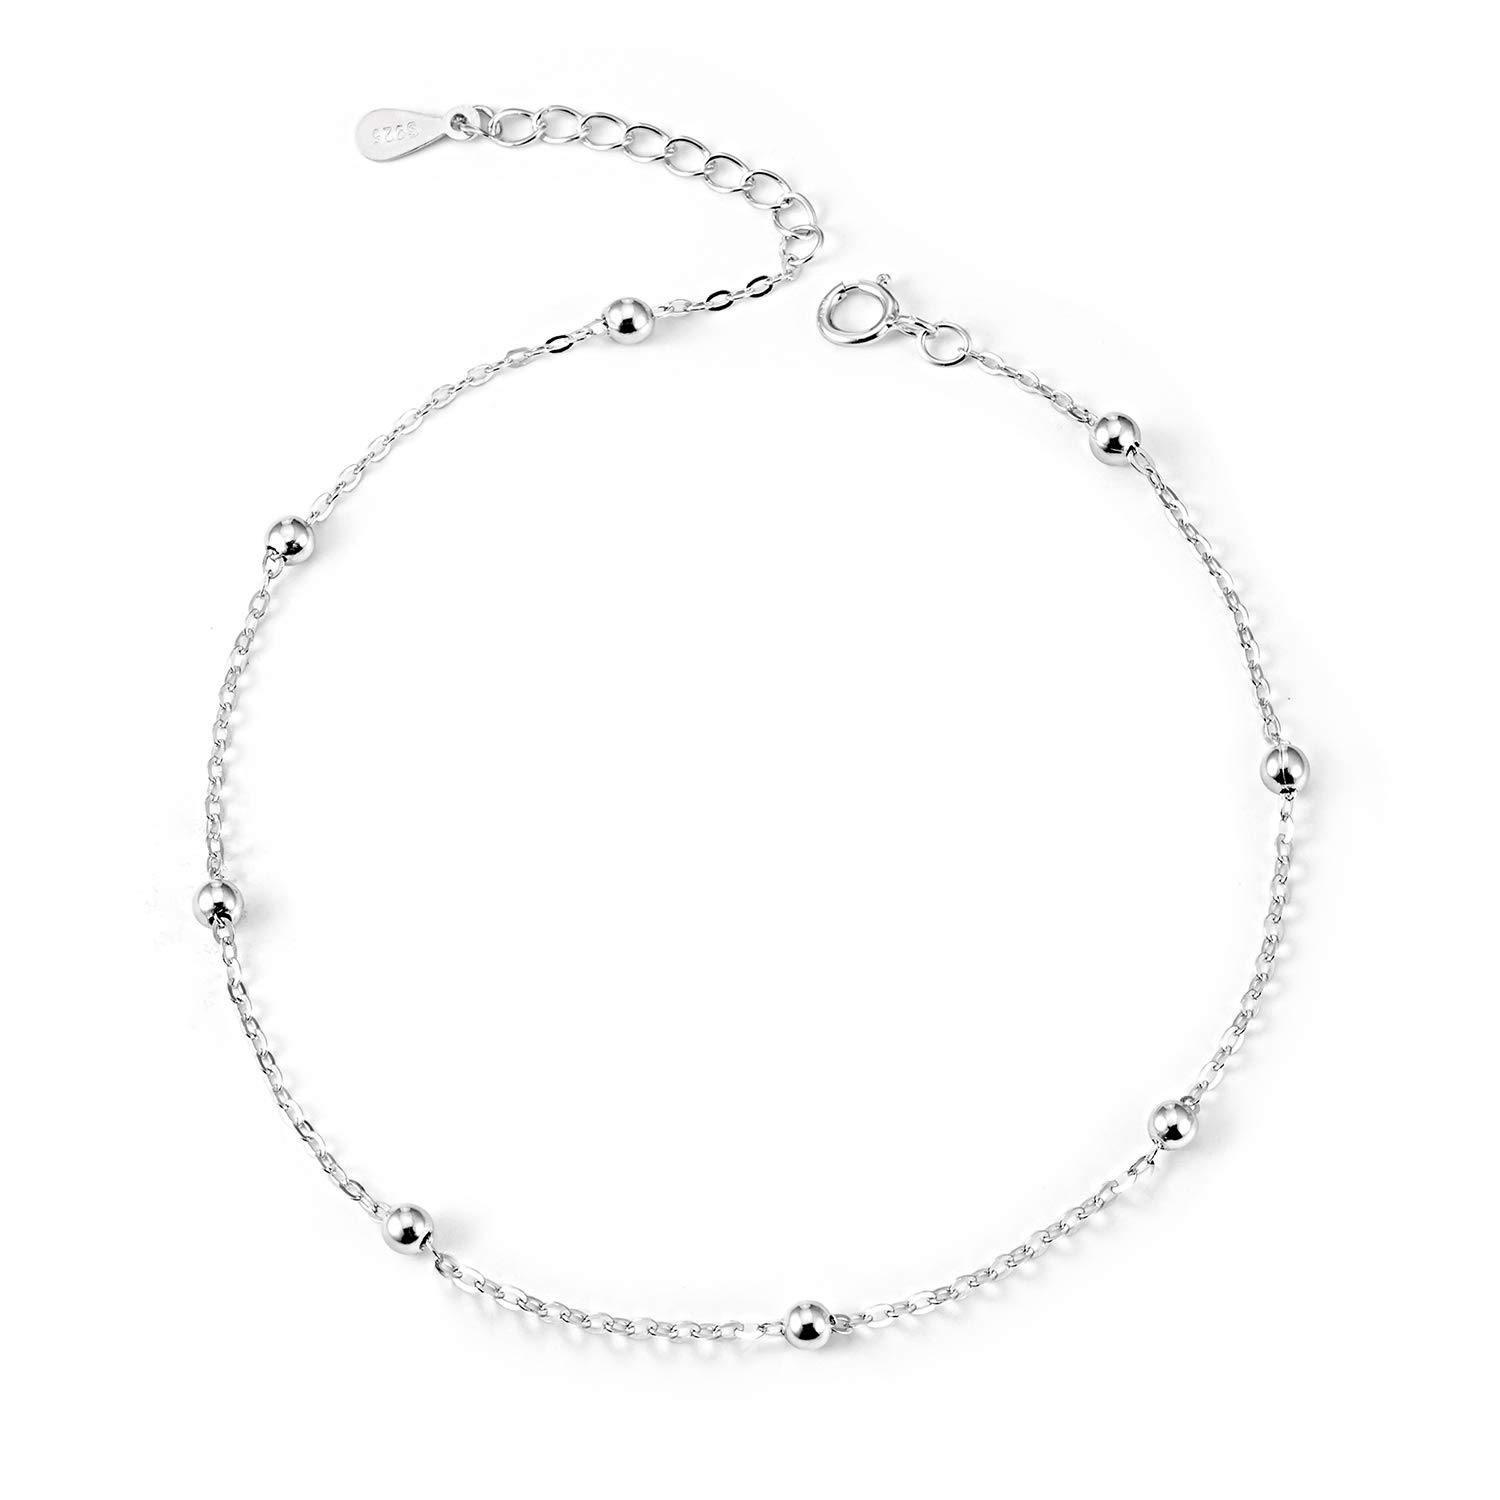 S925 Sterling Silver Anklet for Women Girl 18K White Gold Plated Cable Chain Bracelets Adjustable Beach Style Foot Ankle Jewelry Gift